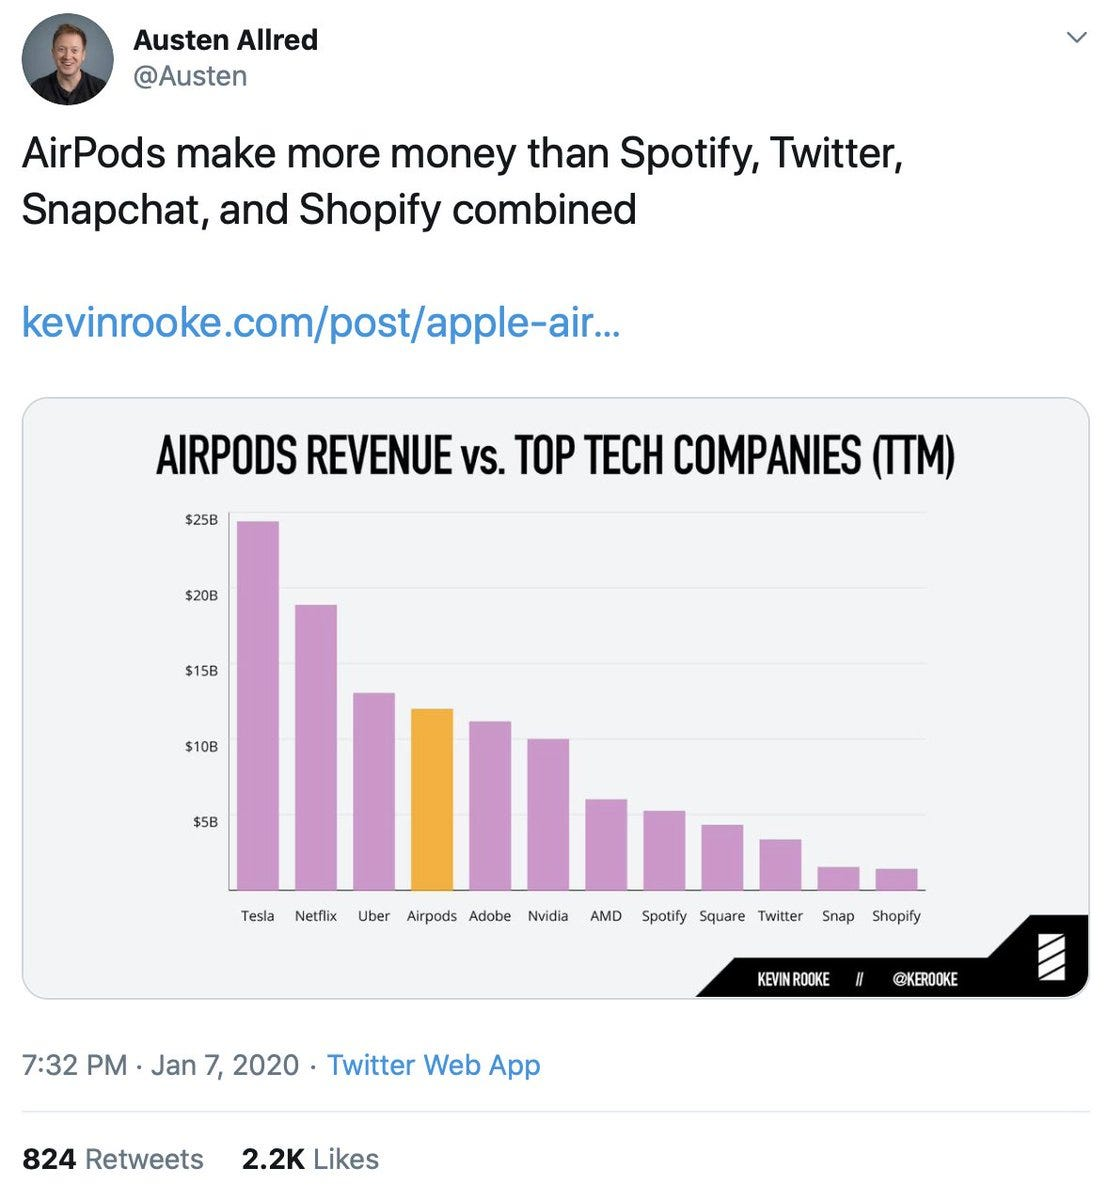 """Neil Cybart on Twitter: """"1/ A few hours ago, this tweet came to my  attention. It's about AirPods revenue and it's not correct. AirPods revenue  does not exceed Spotify, Twitter, Snapchat, and"""